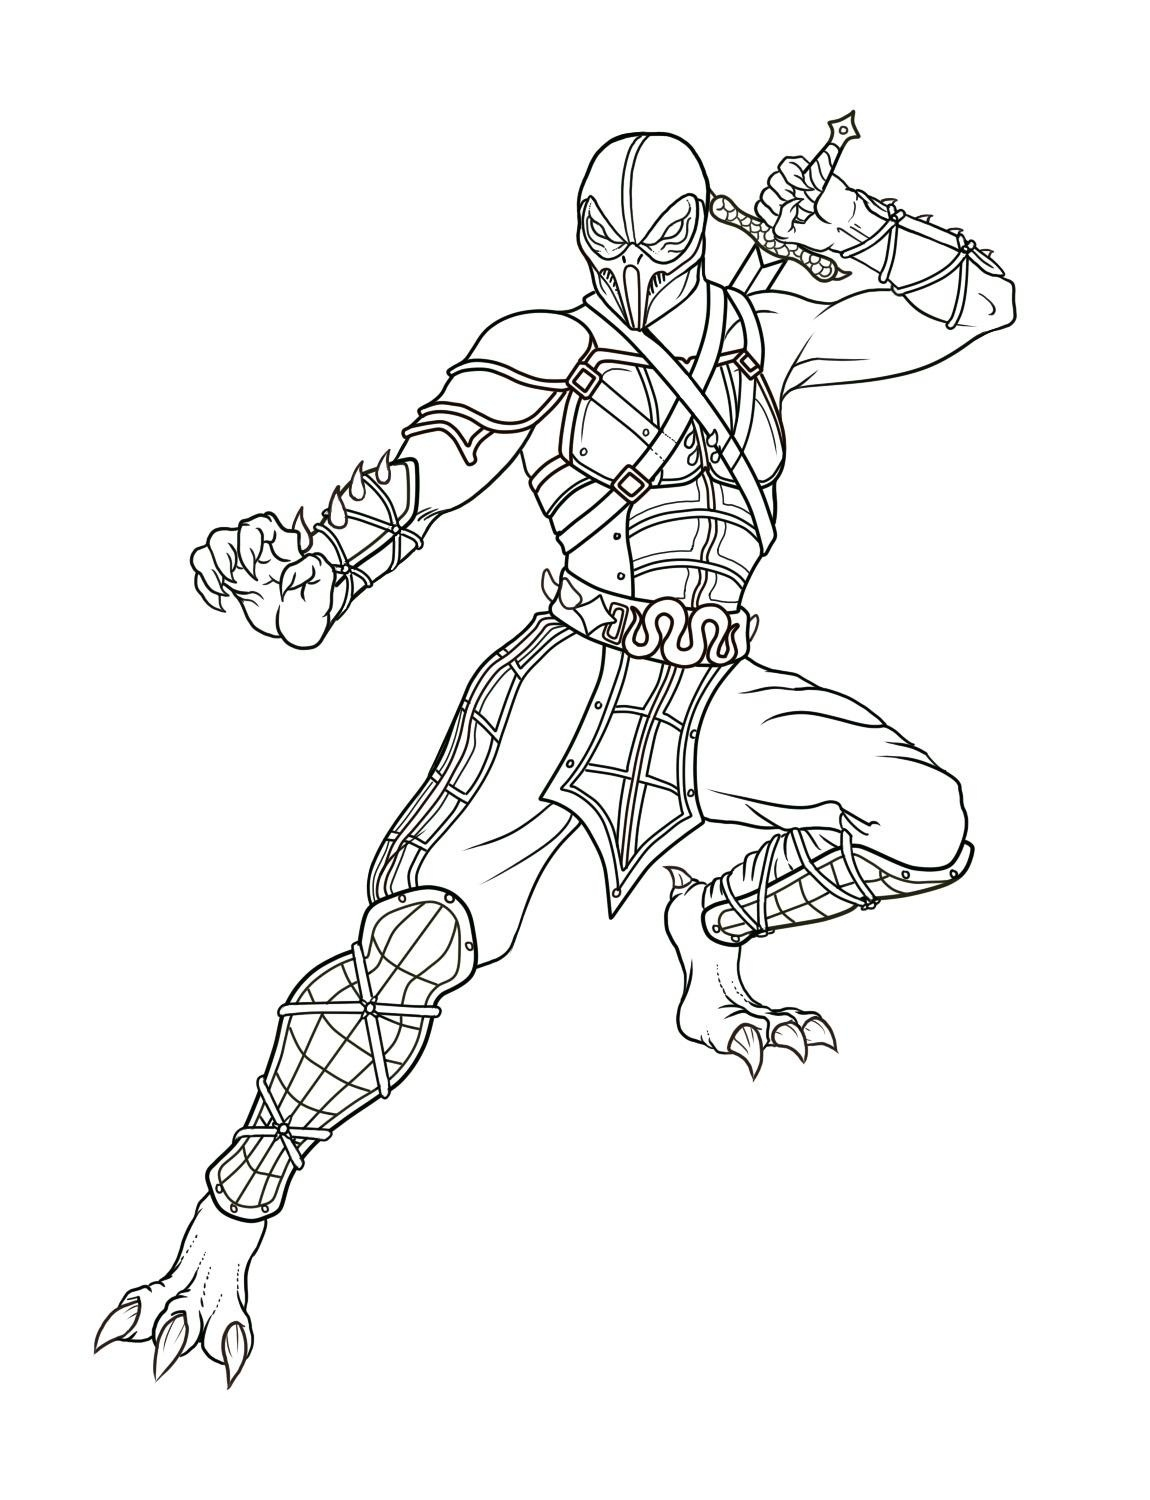 Mortal Kombat Coloring Pages - Free Printable Mortal Kombat Coloring Pages for Kids